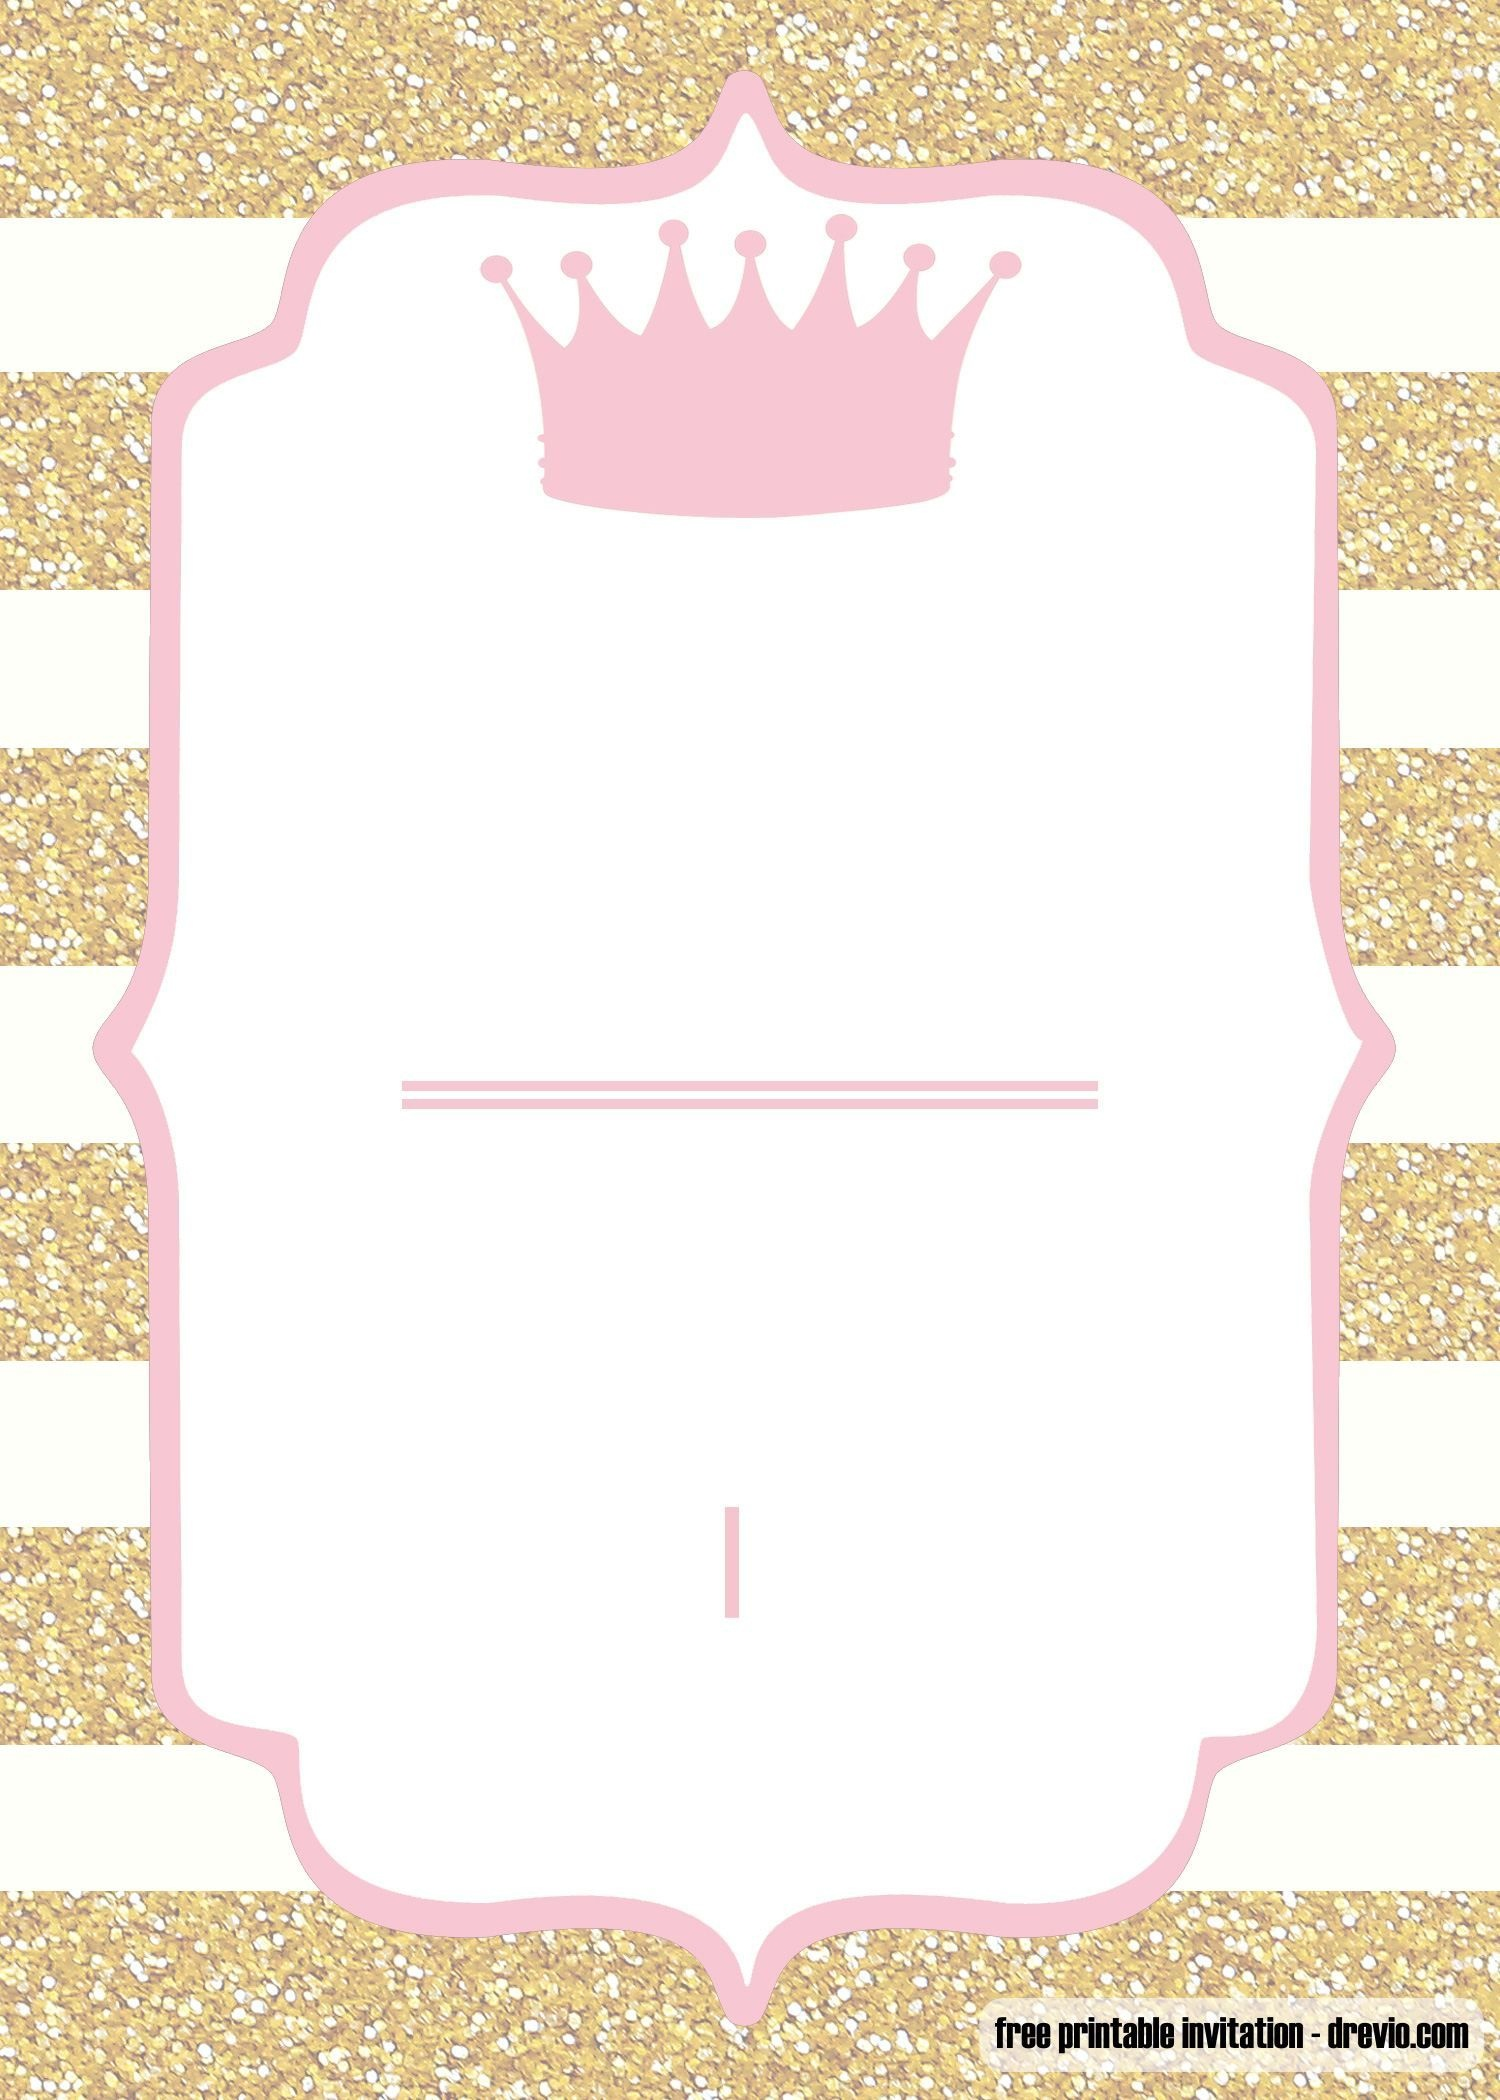 Free Printable Pink And Gold Baby Shower Invitation   Baby - Free Printable Blank Baby Shower Invitations